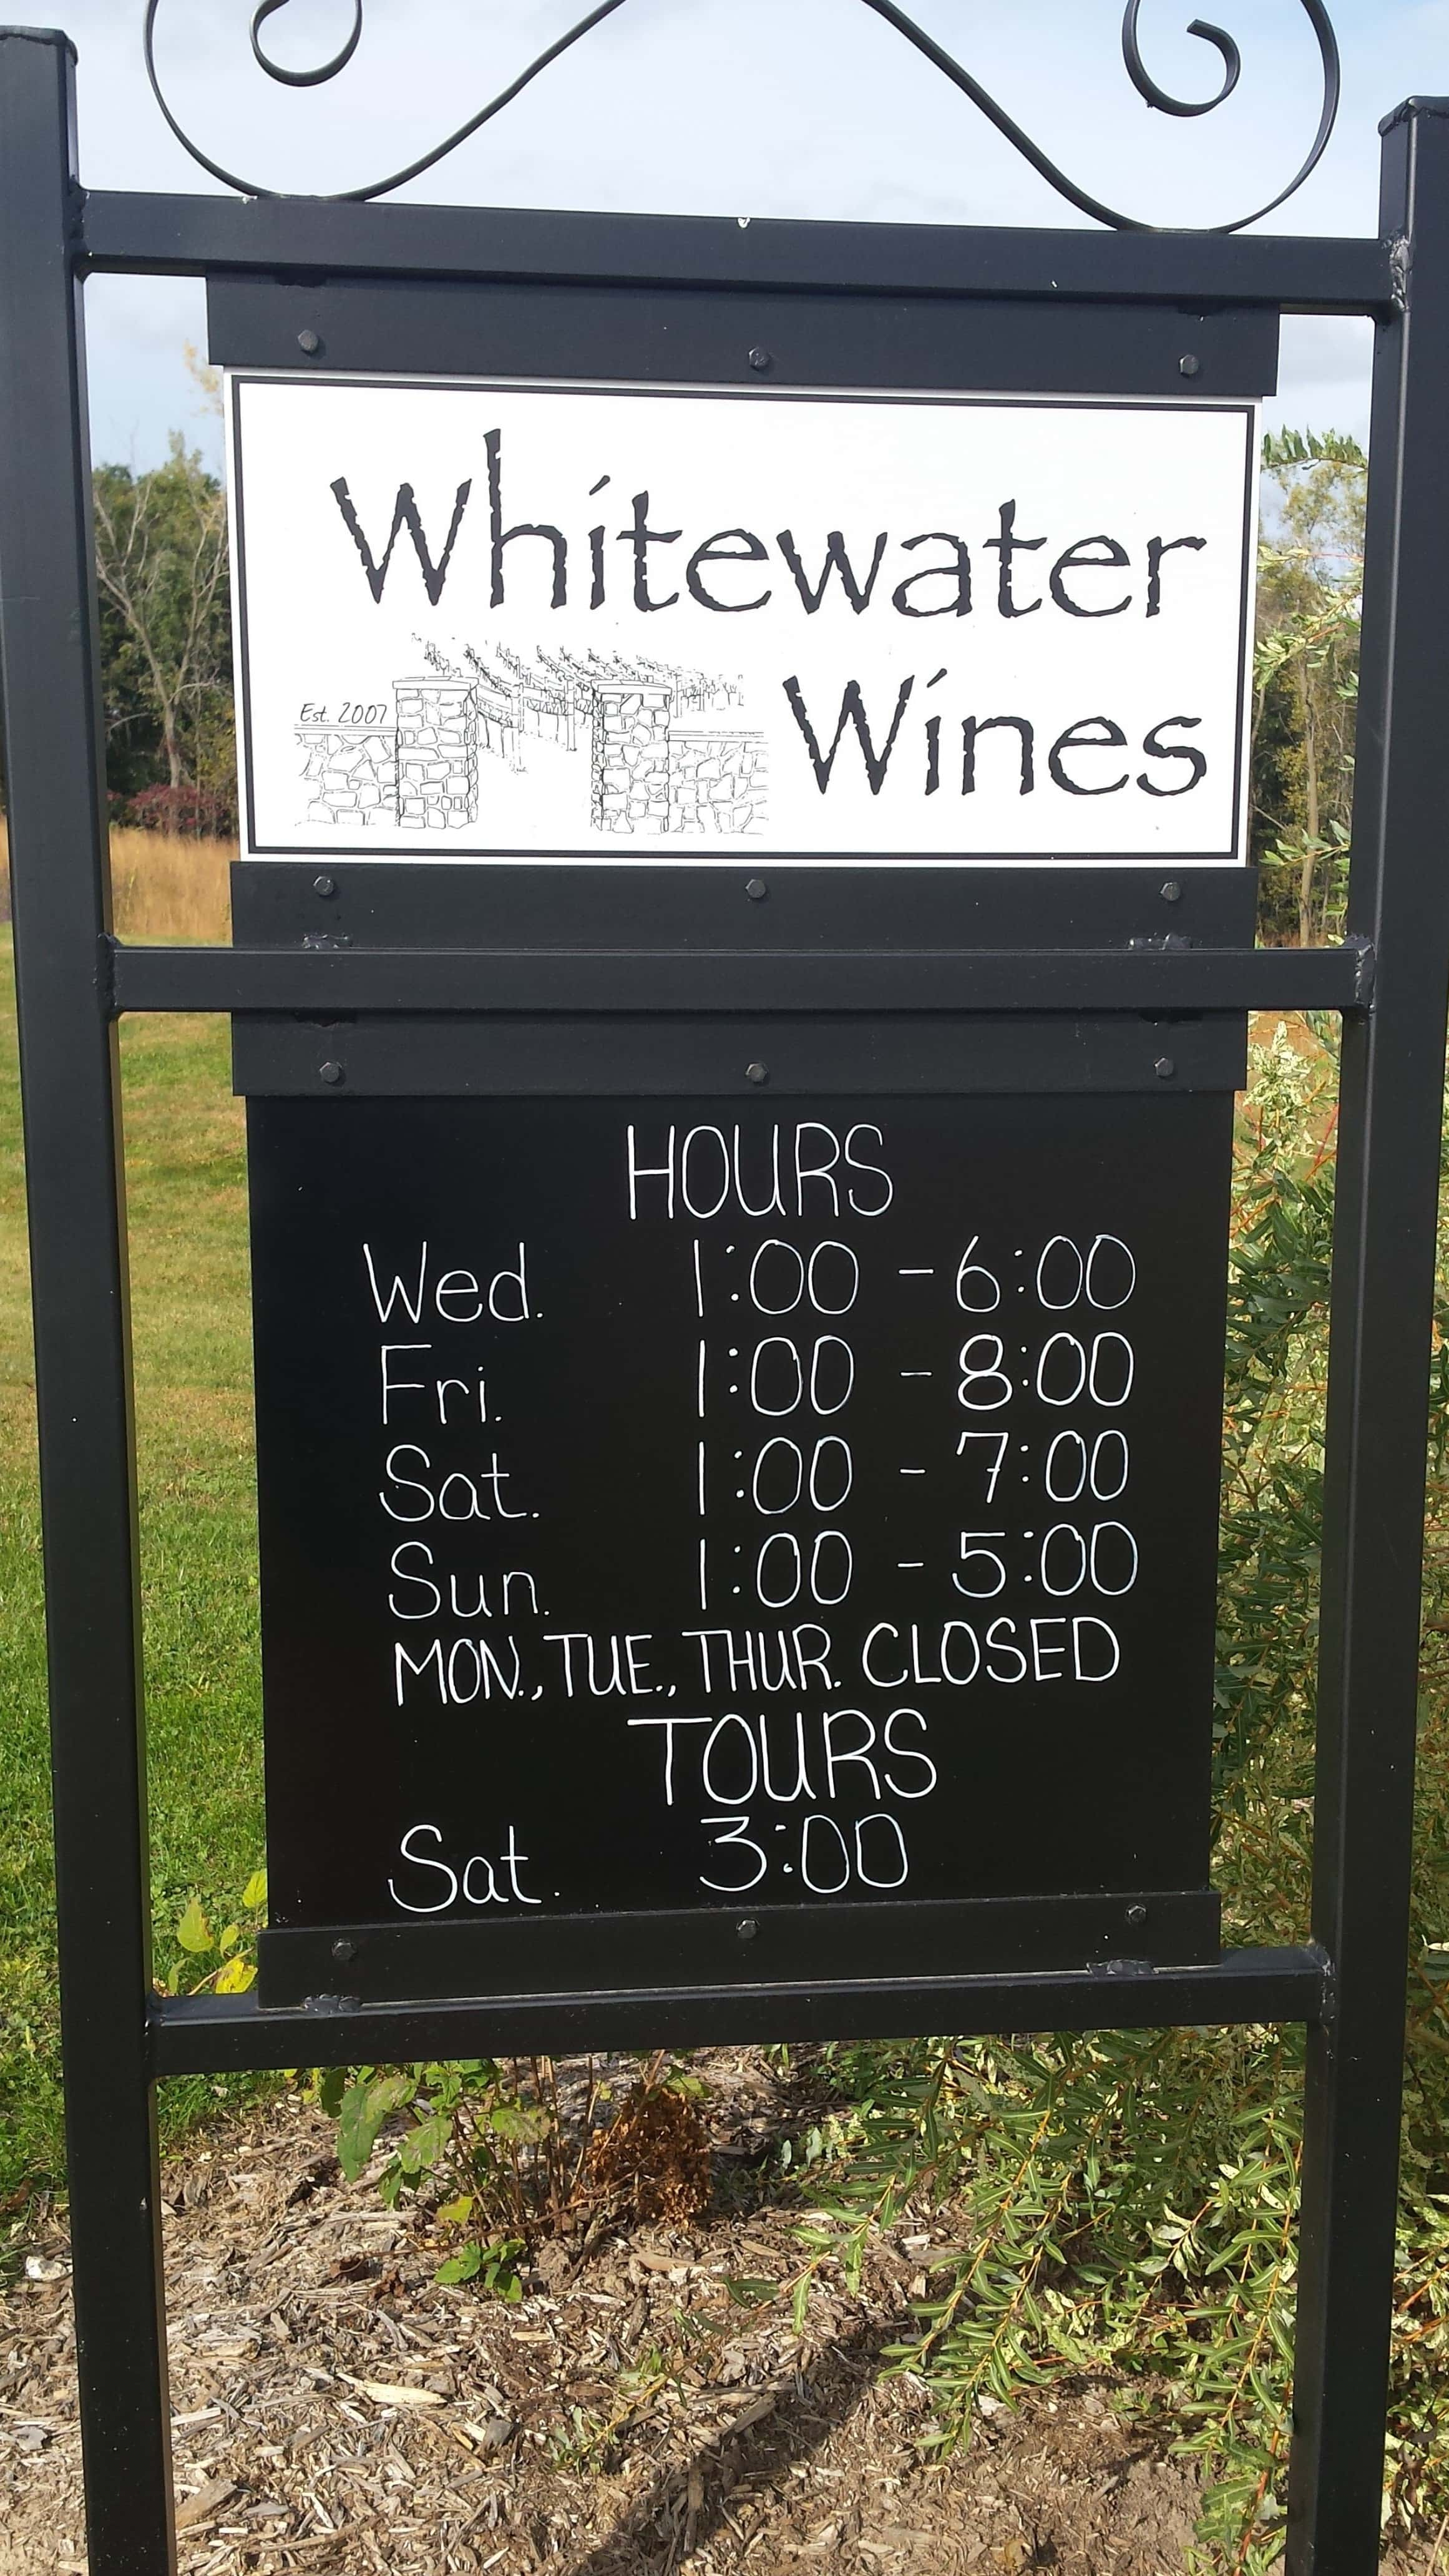 Hours at Whitewater Wines